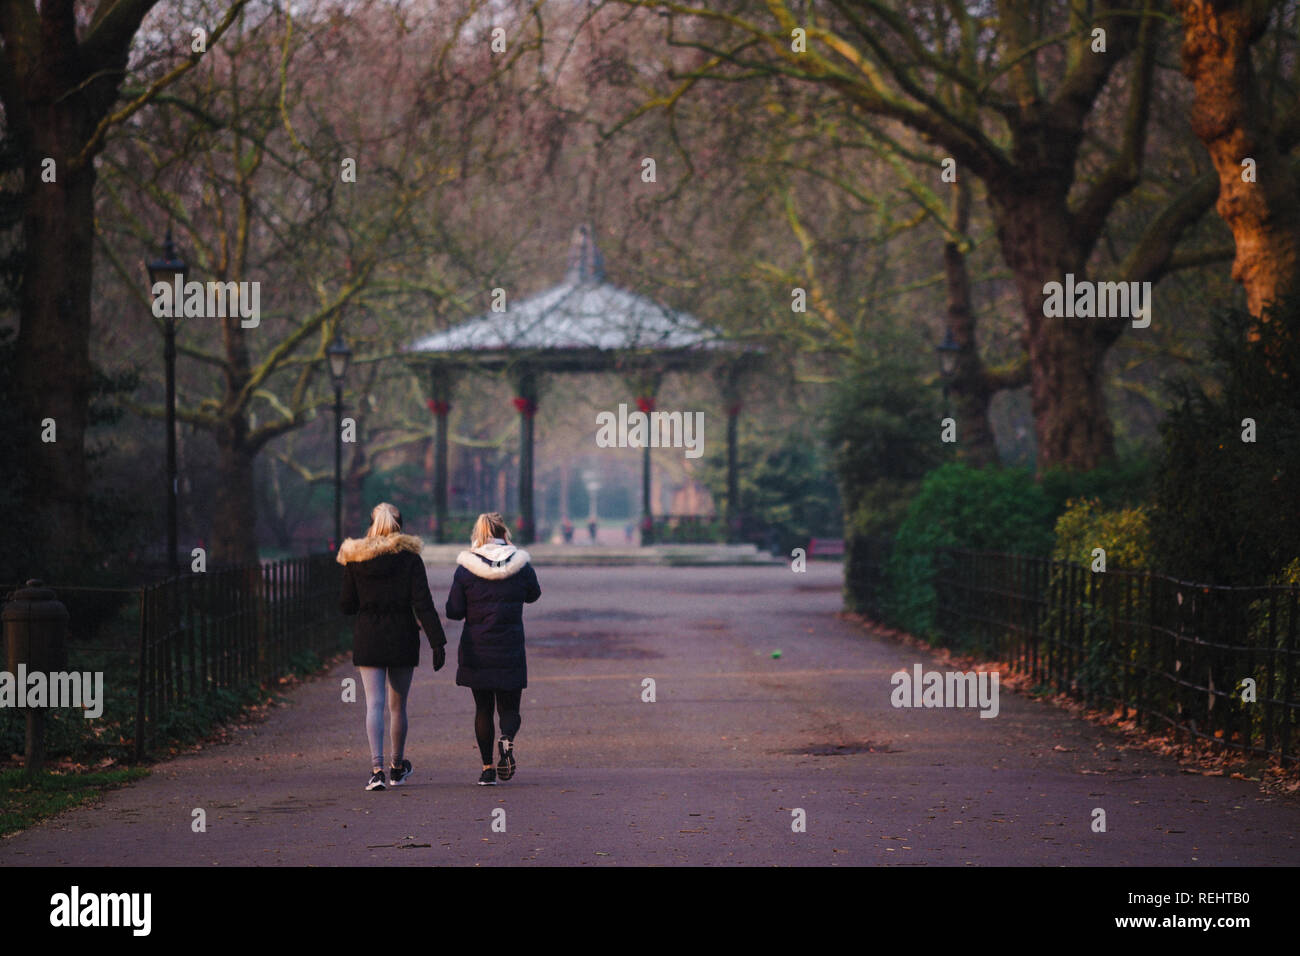 Battersea Park's ornate Victorian bandstand in golden hour, with two women walking towards it - Stock Image